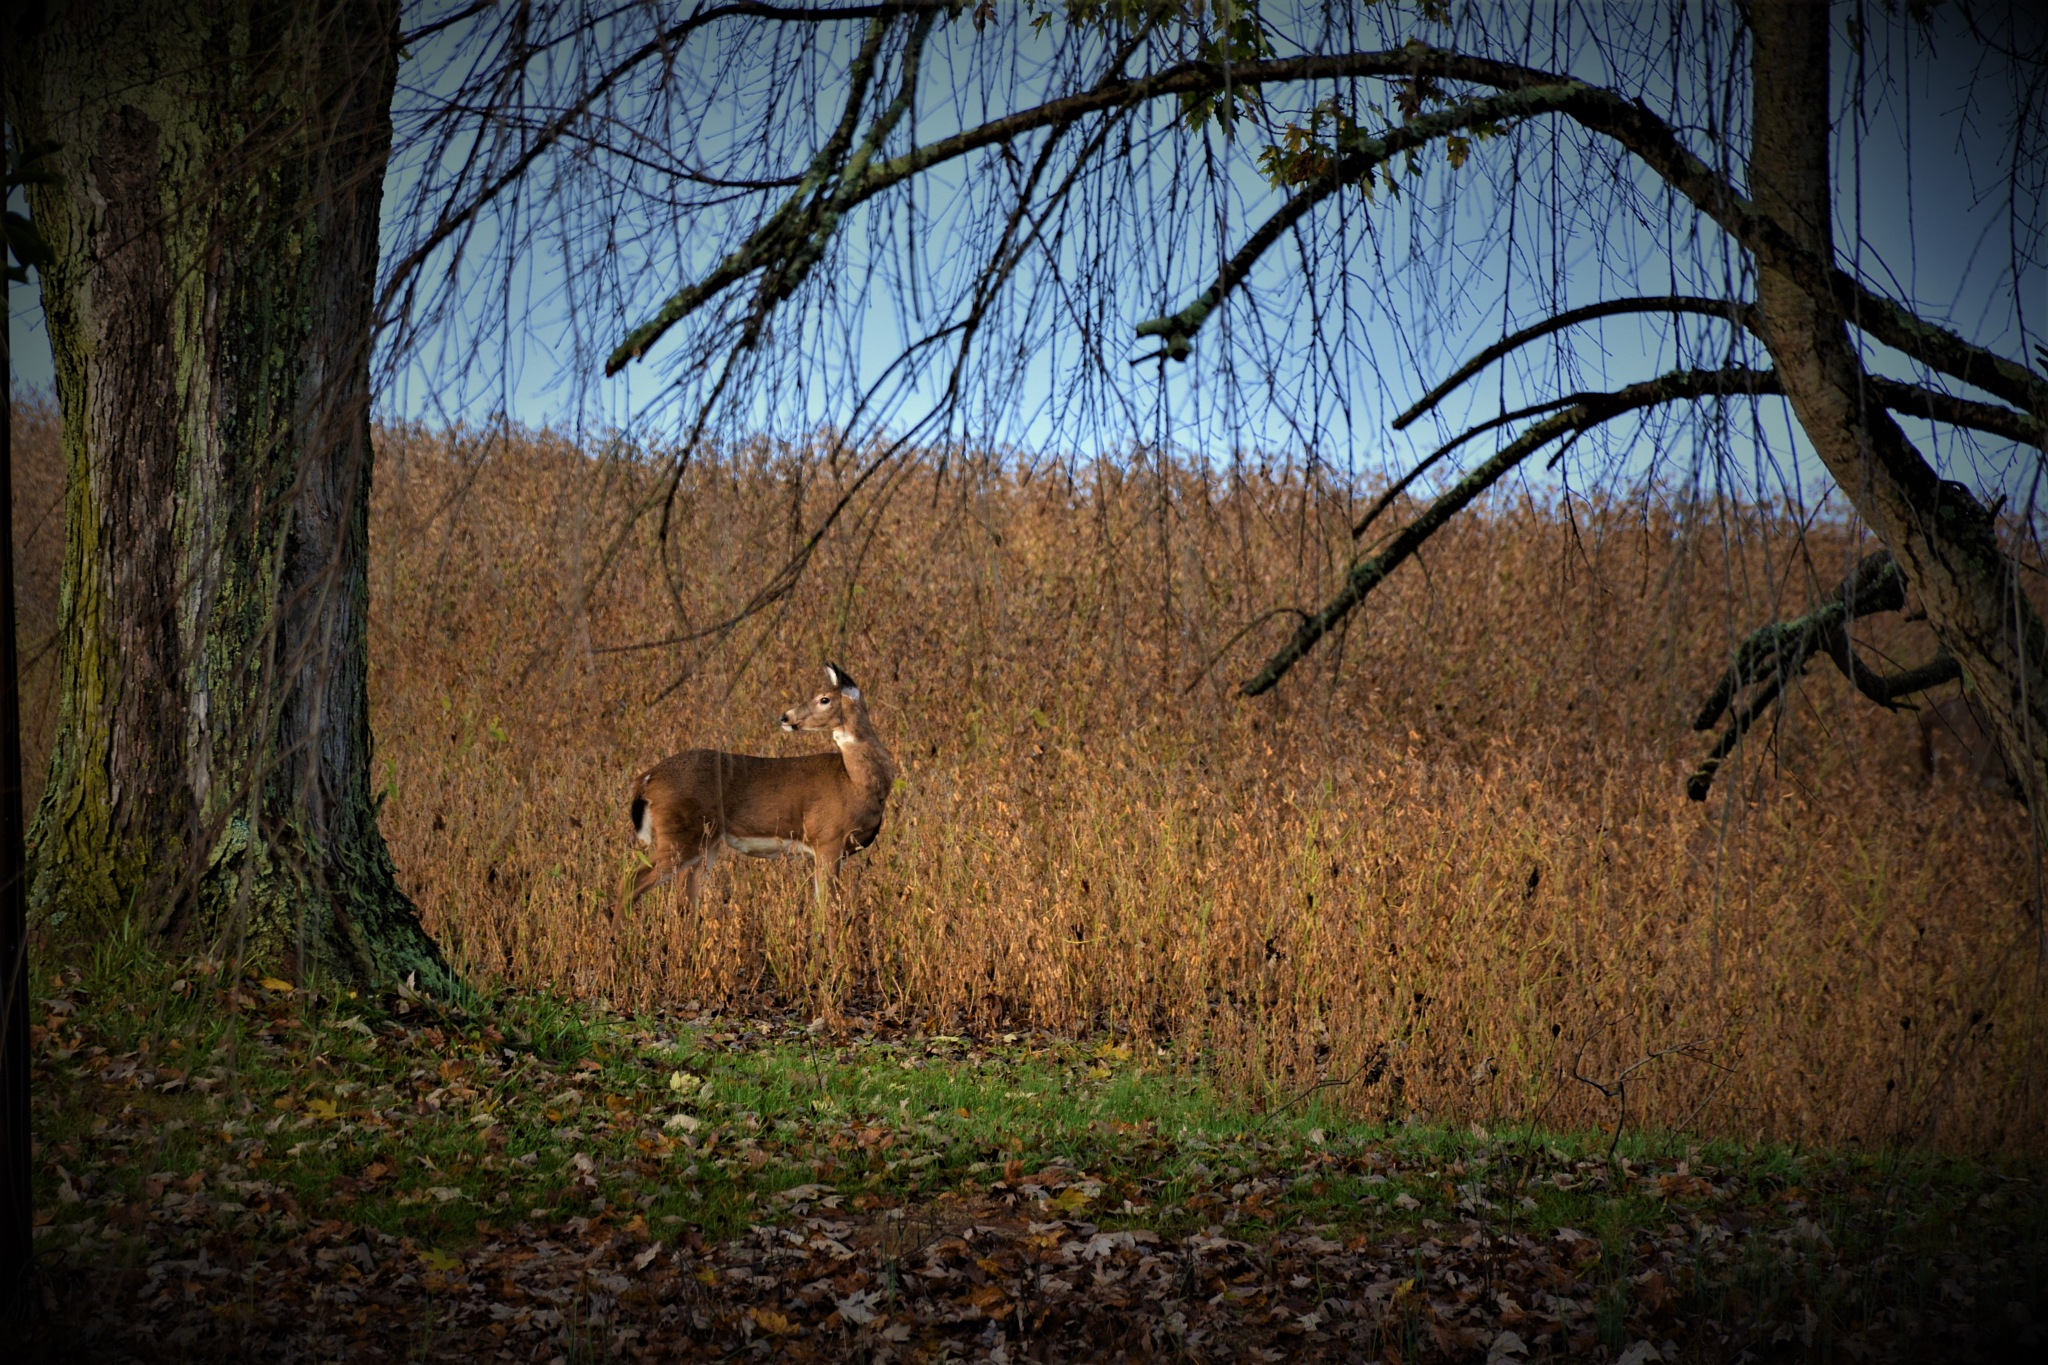 Deer in field  by Zach Henderson